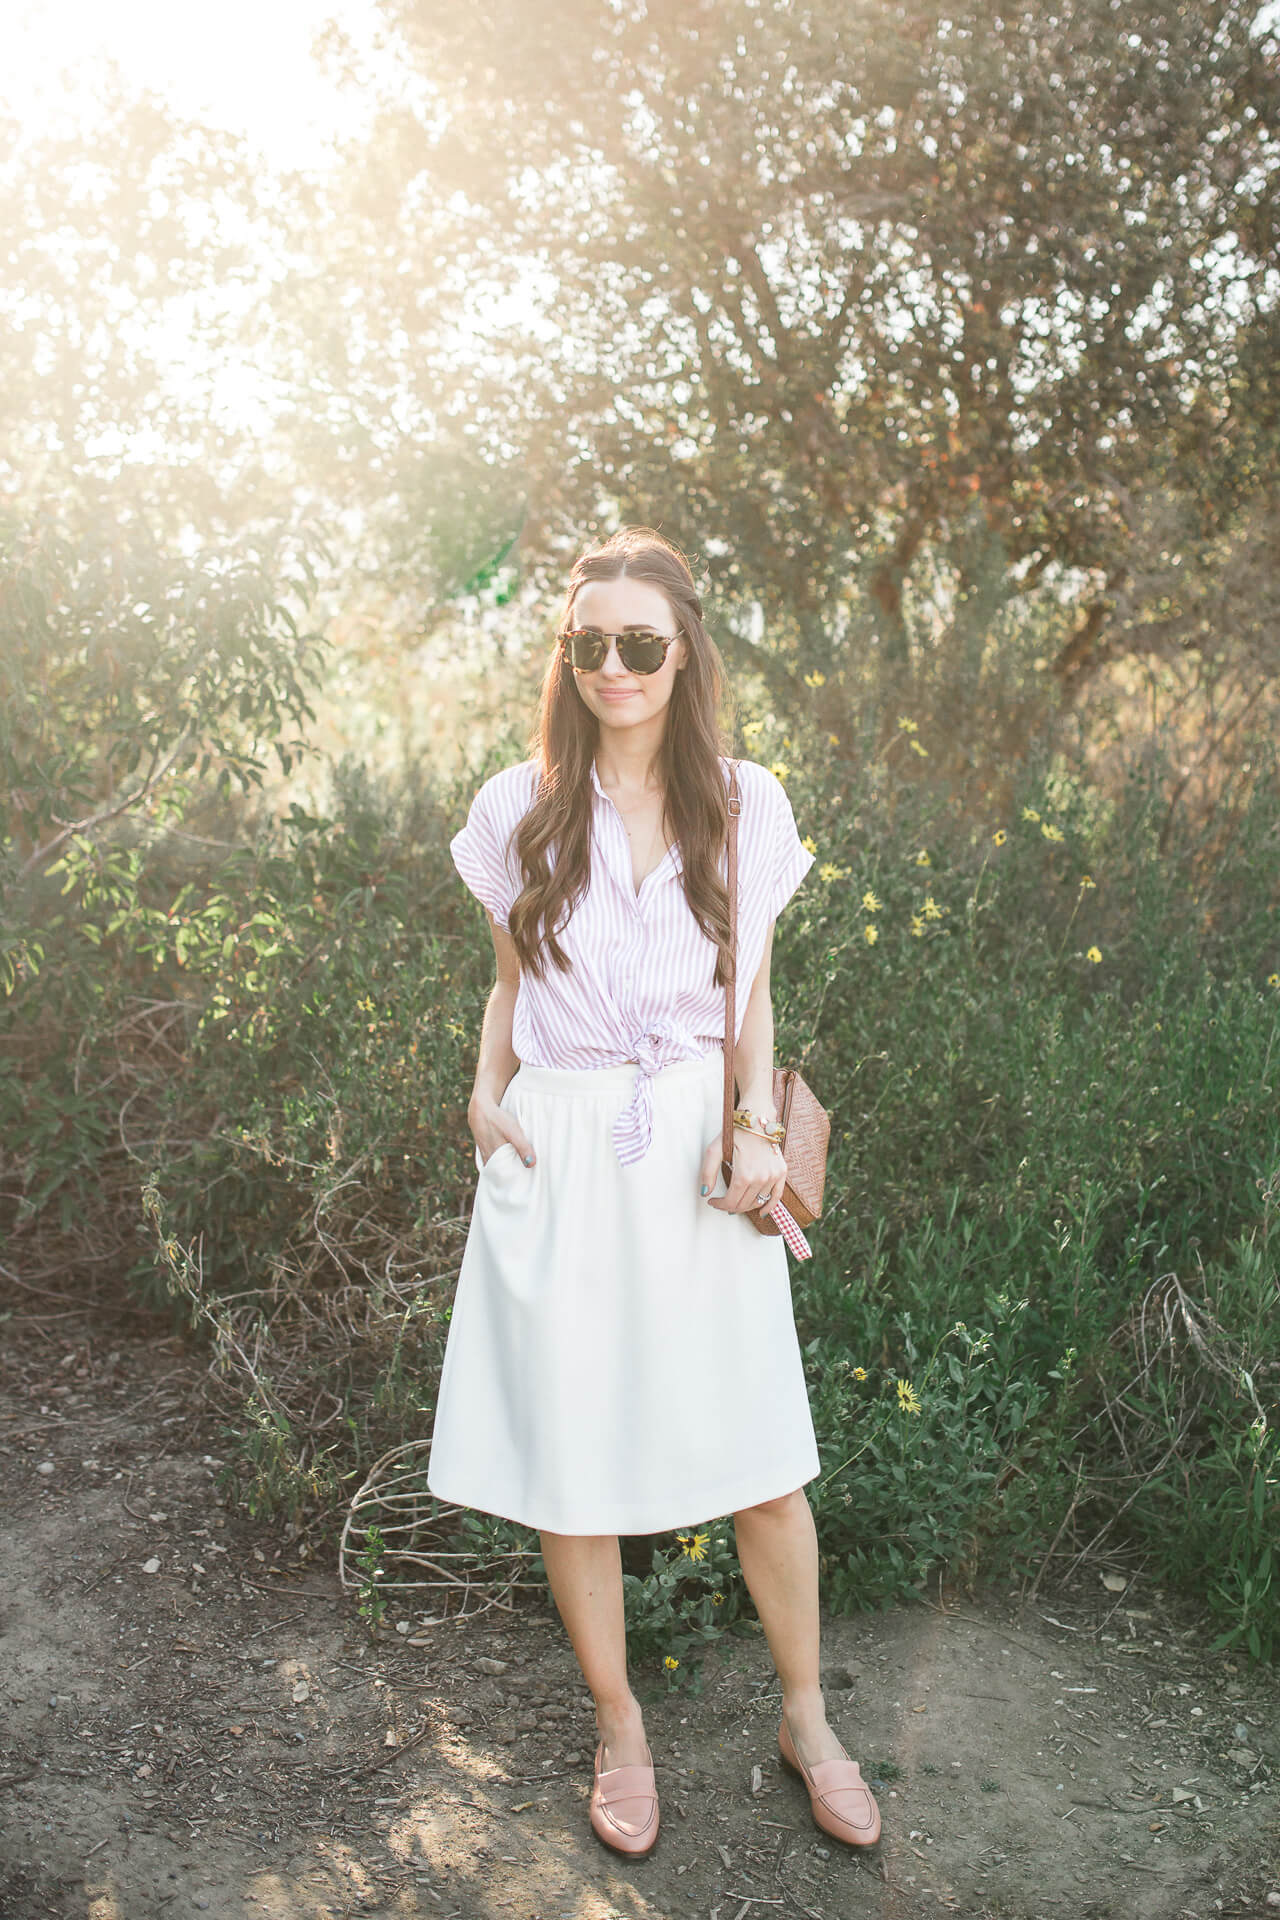 Looking for spring outfit inspiration? Check out this button-down and skirt combo!| M Loves M @marmar